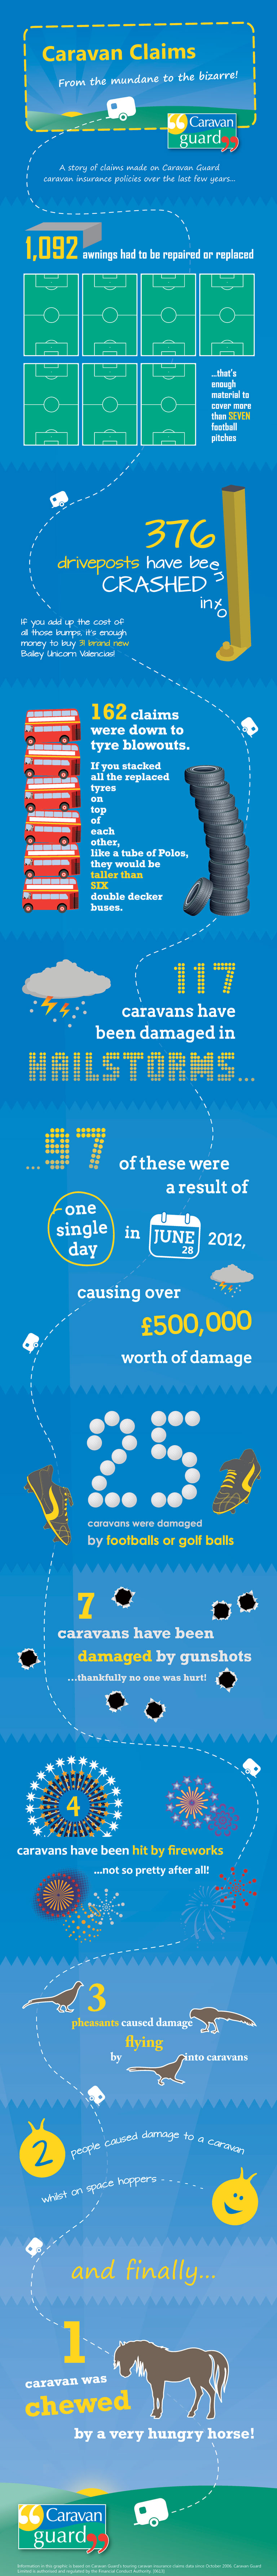 caravan guard insurance claims infographic